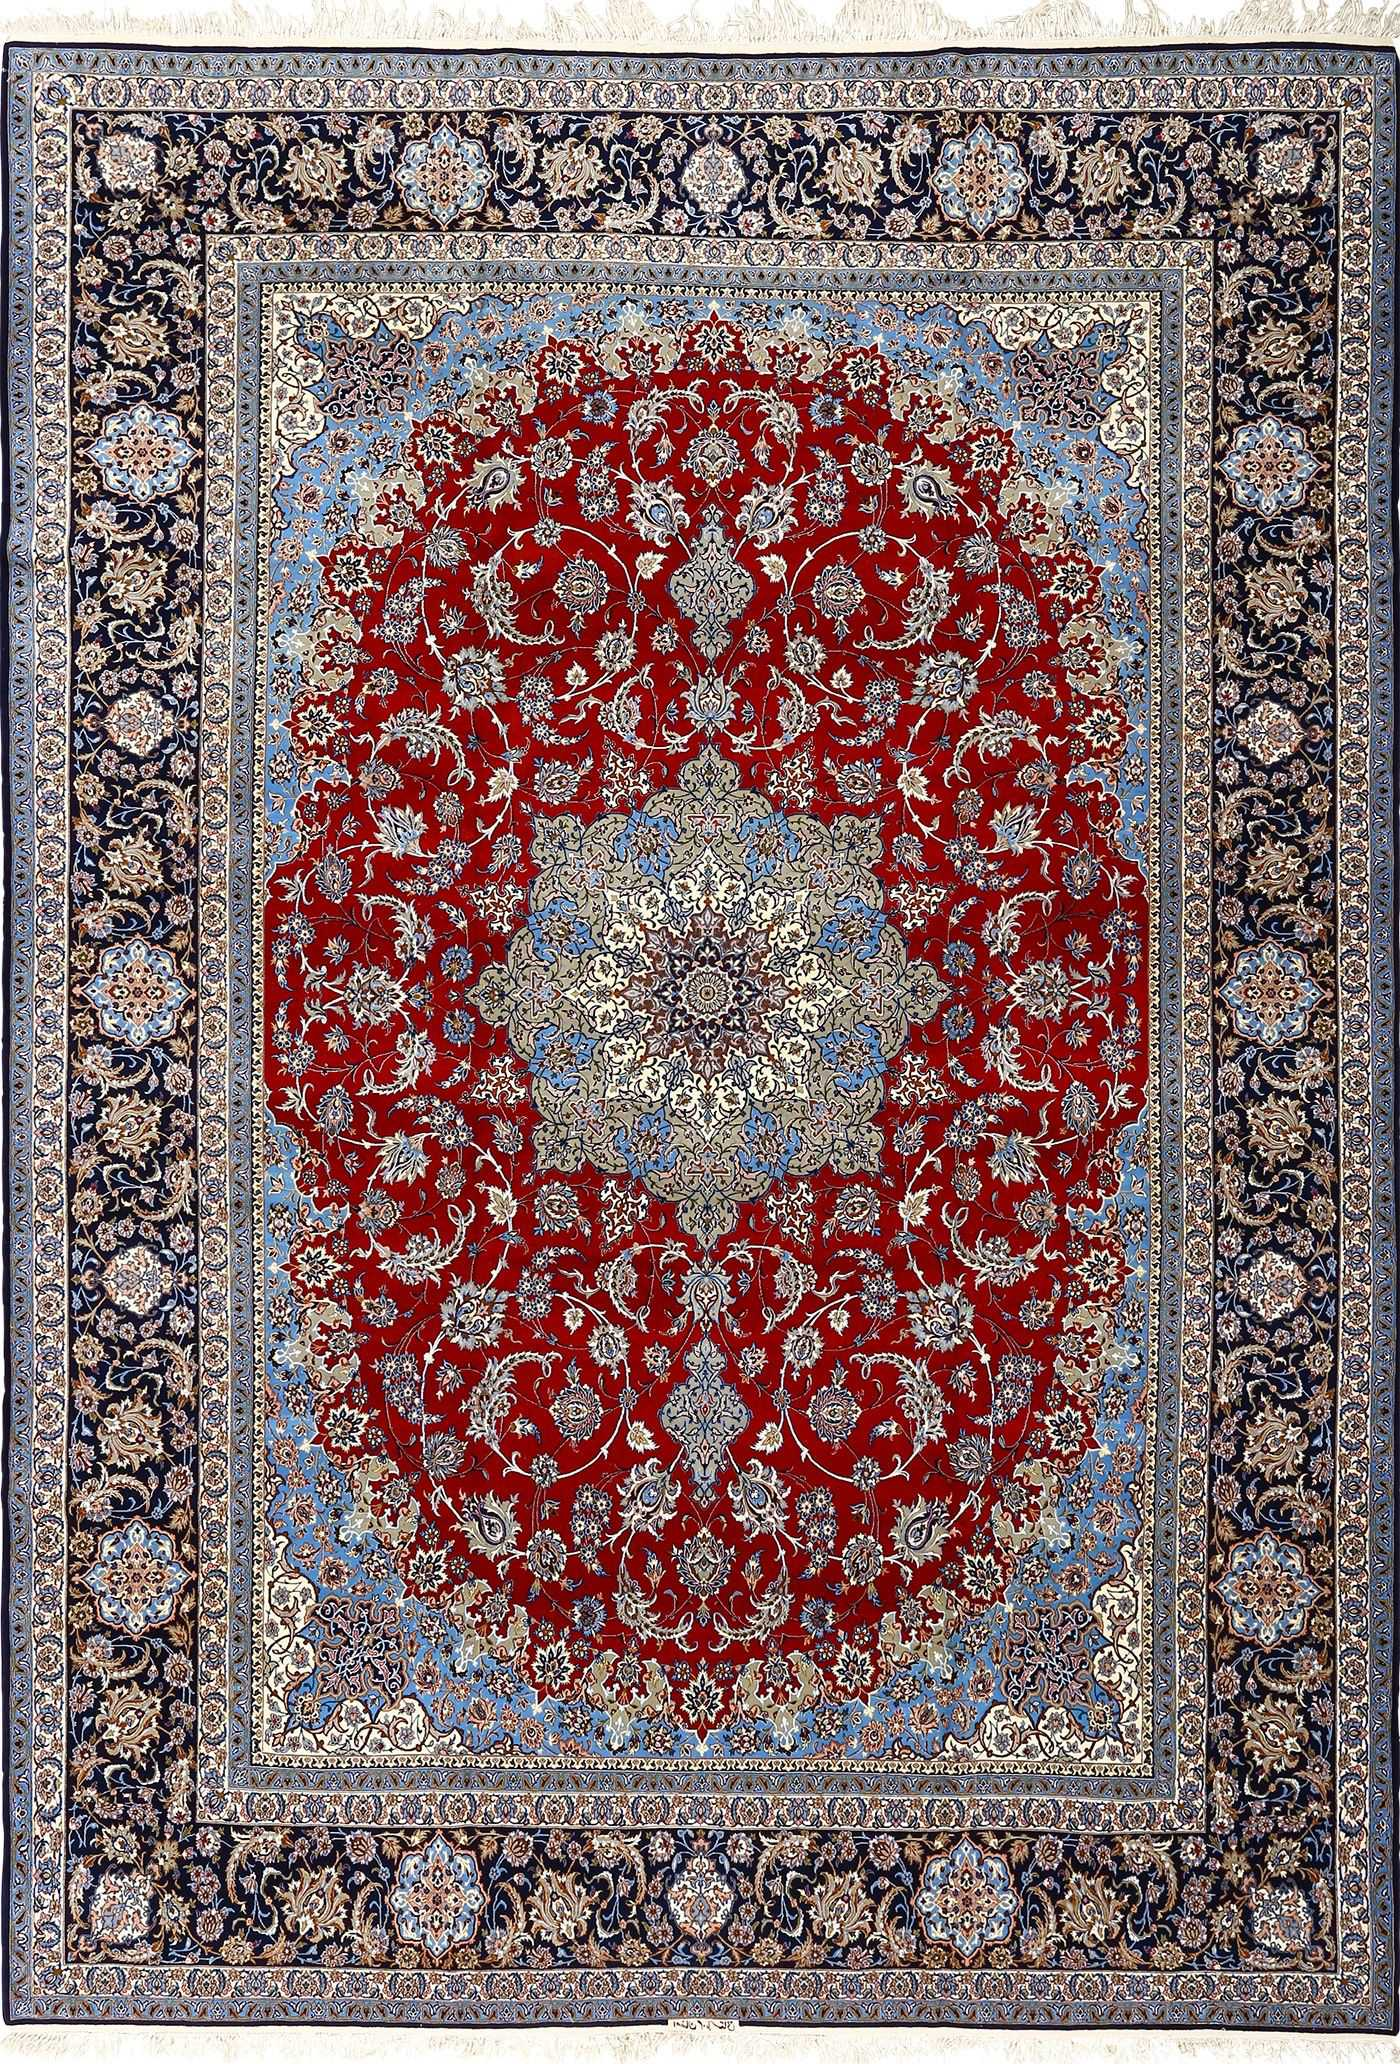 Beautiful Vintage Isfahan Persian Rug 51090 By Nazmiyal